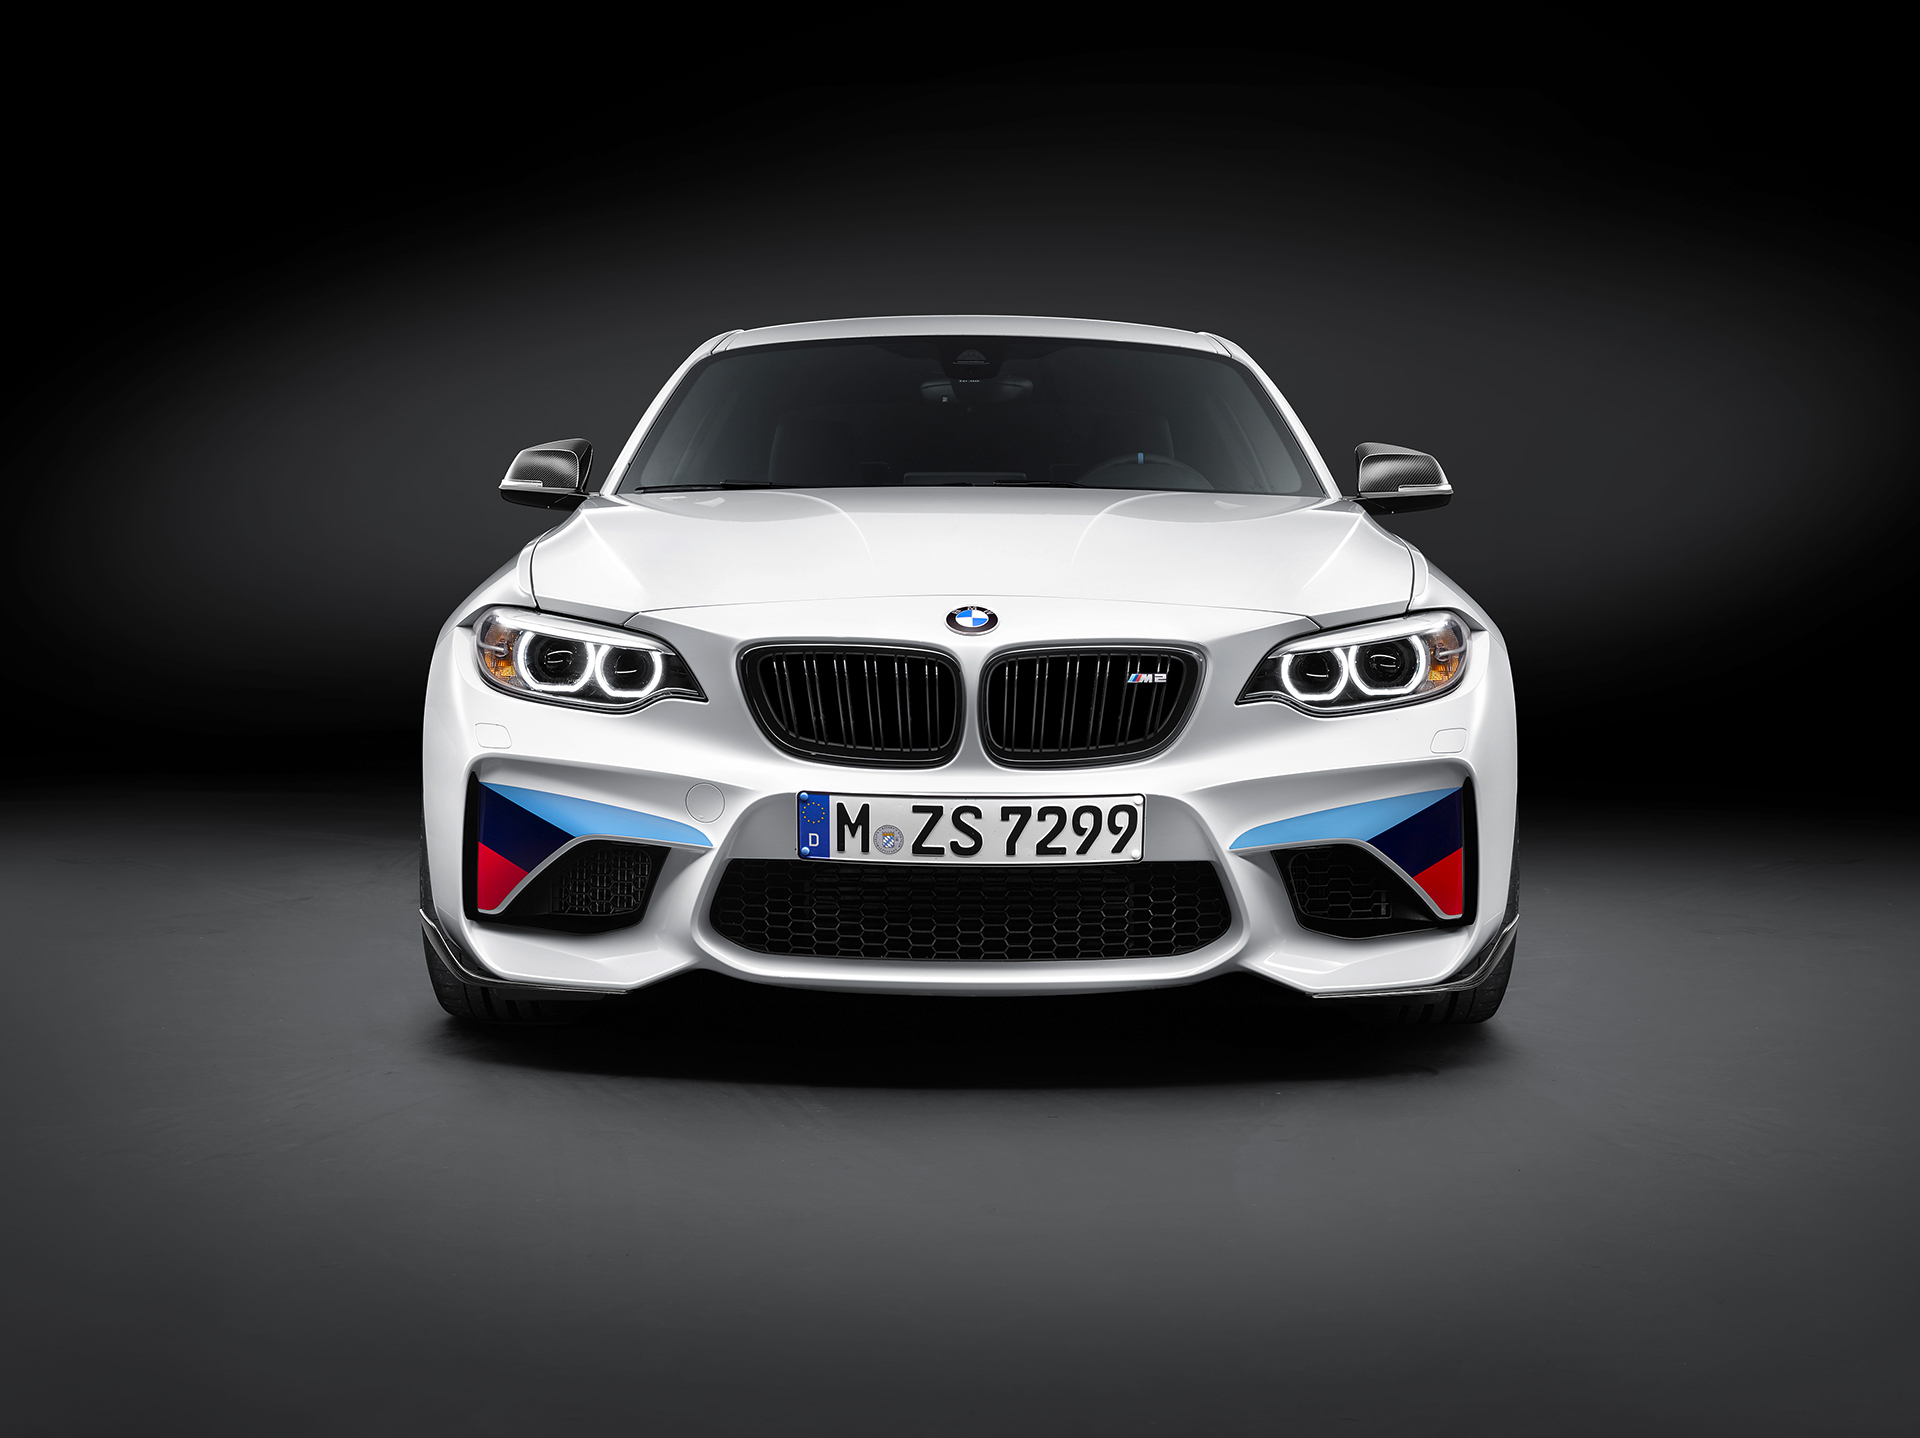 BMW M2 Coupé 2016 BMW M Performance Parts - avant / front